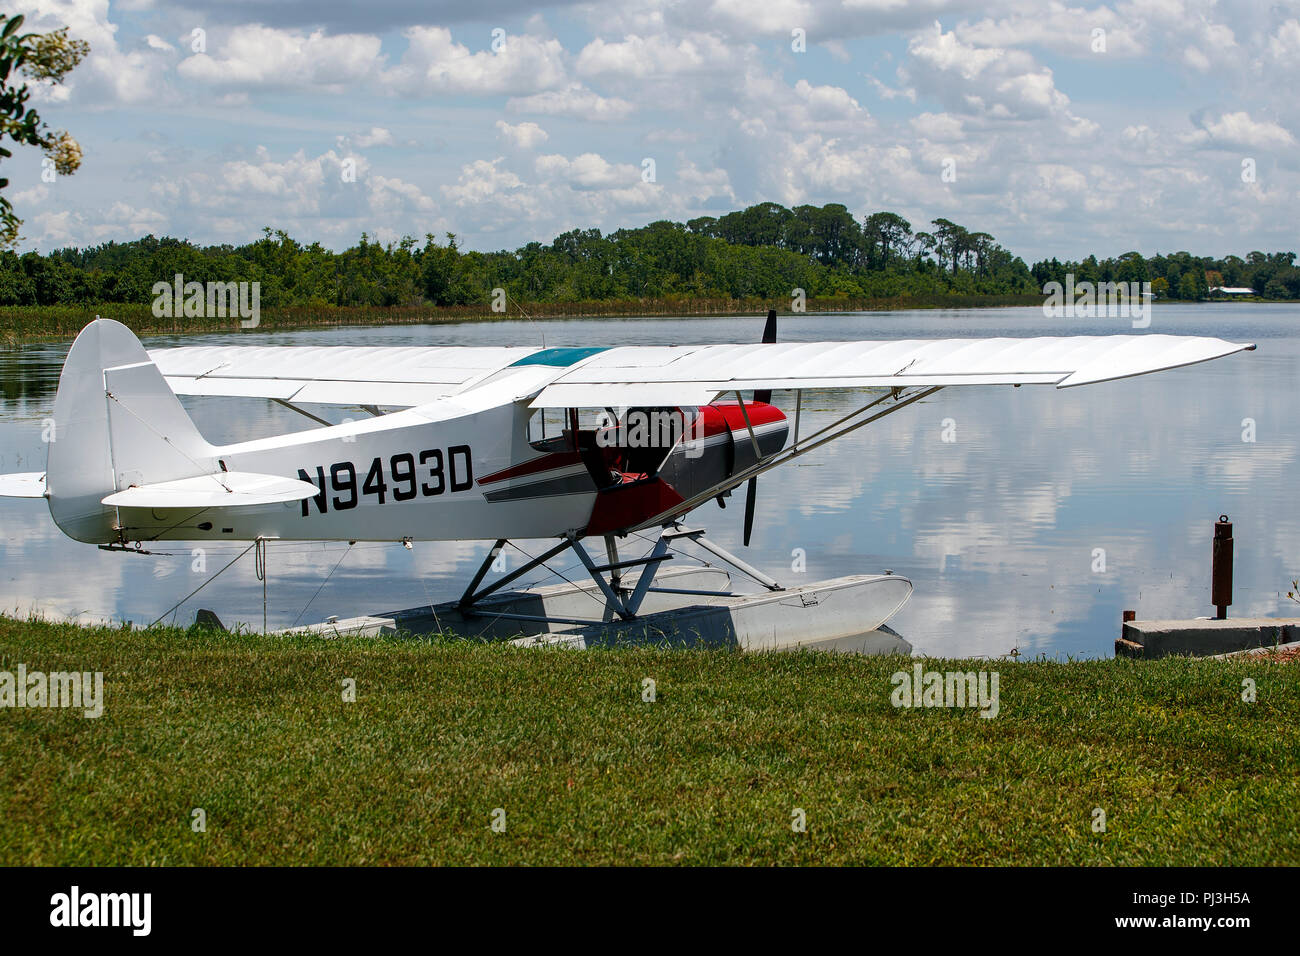 1958 Piper PA-18-150 Super Cub (N9493D) beached on the shores of Lake Jessie, Jack Brown's Seaplane Base (F57), Winter Haven, Florida, United States of America - Stock Image